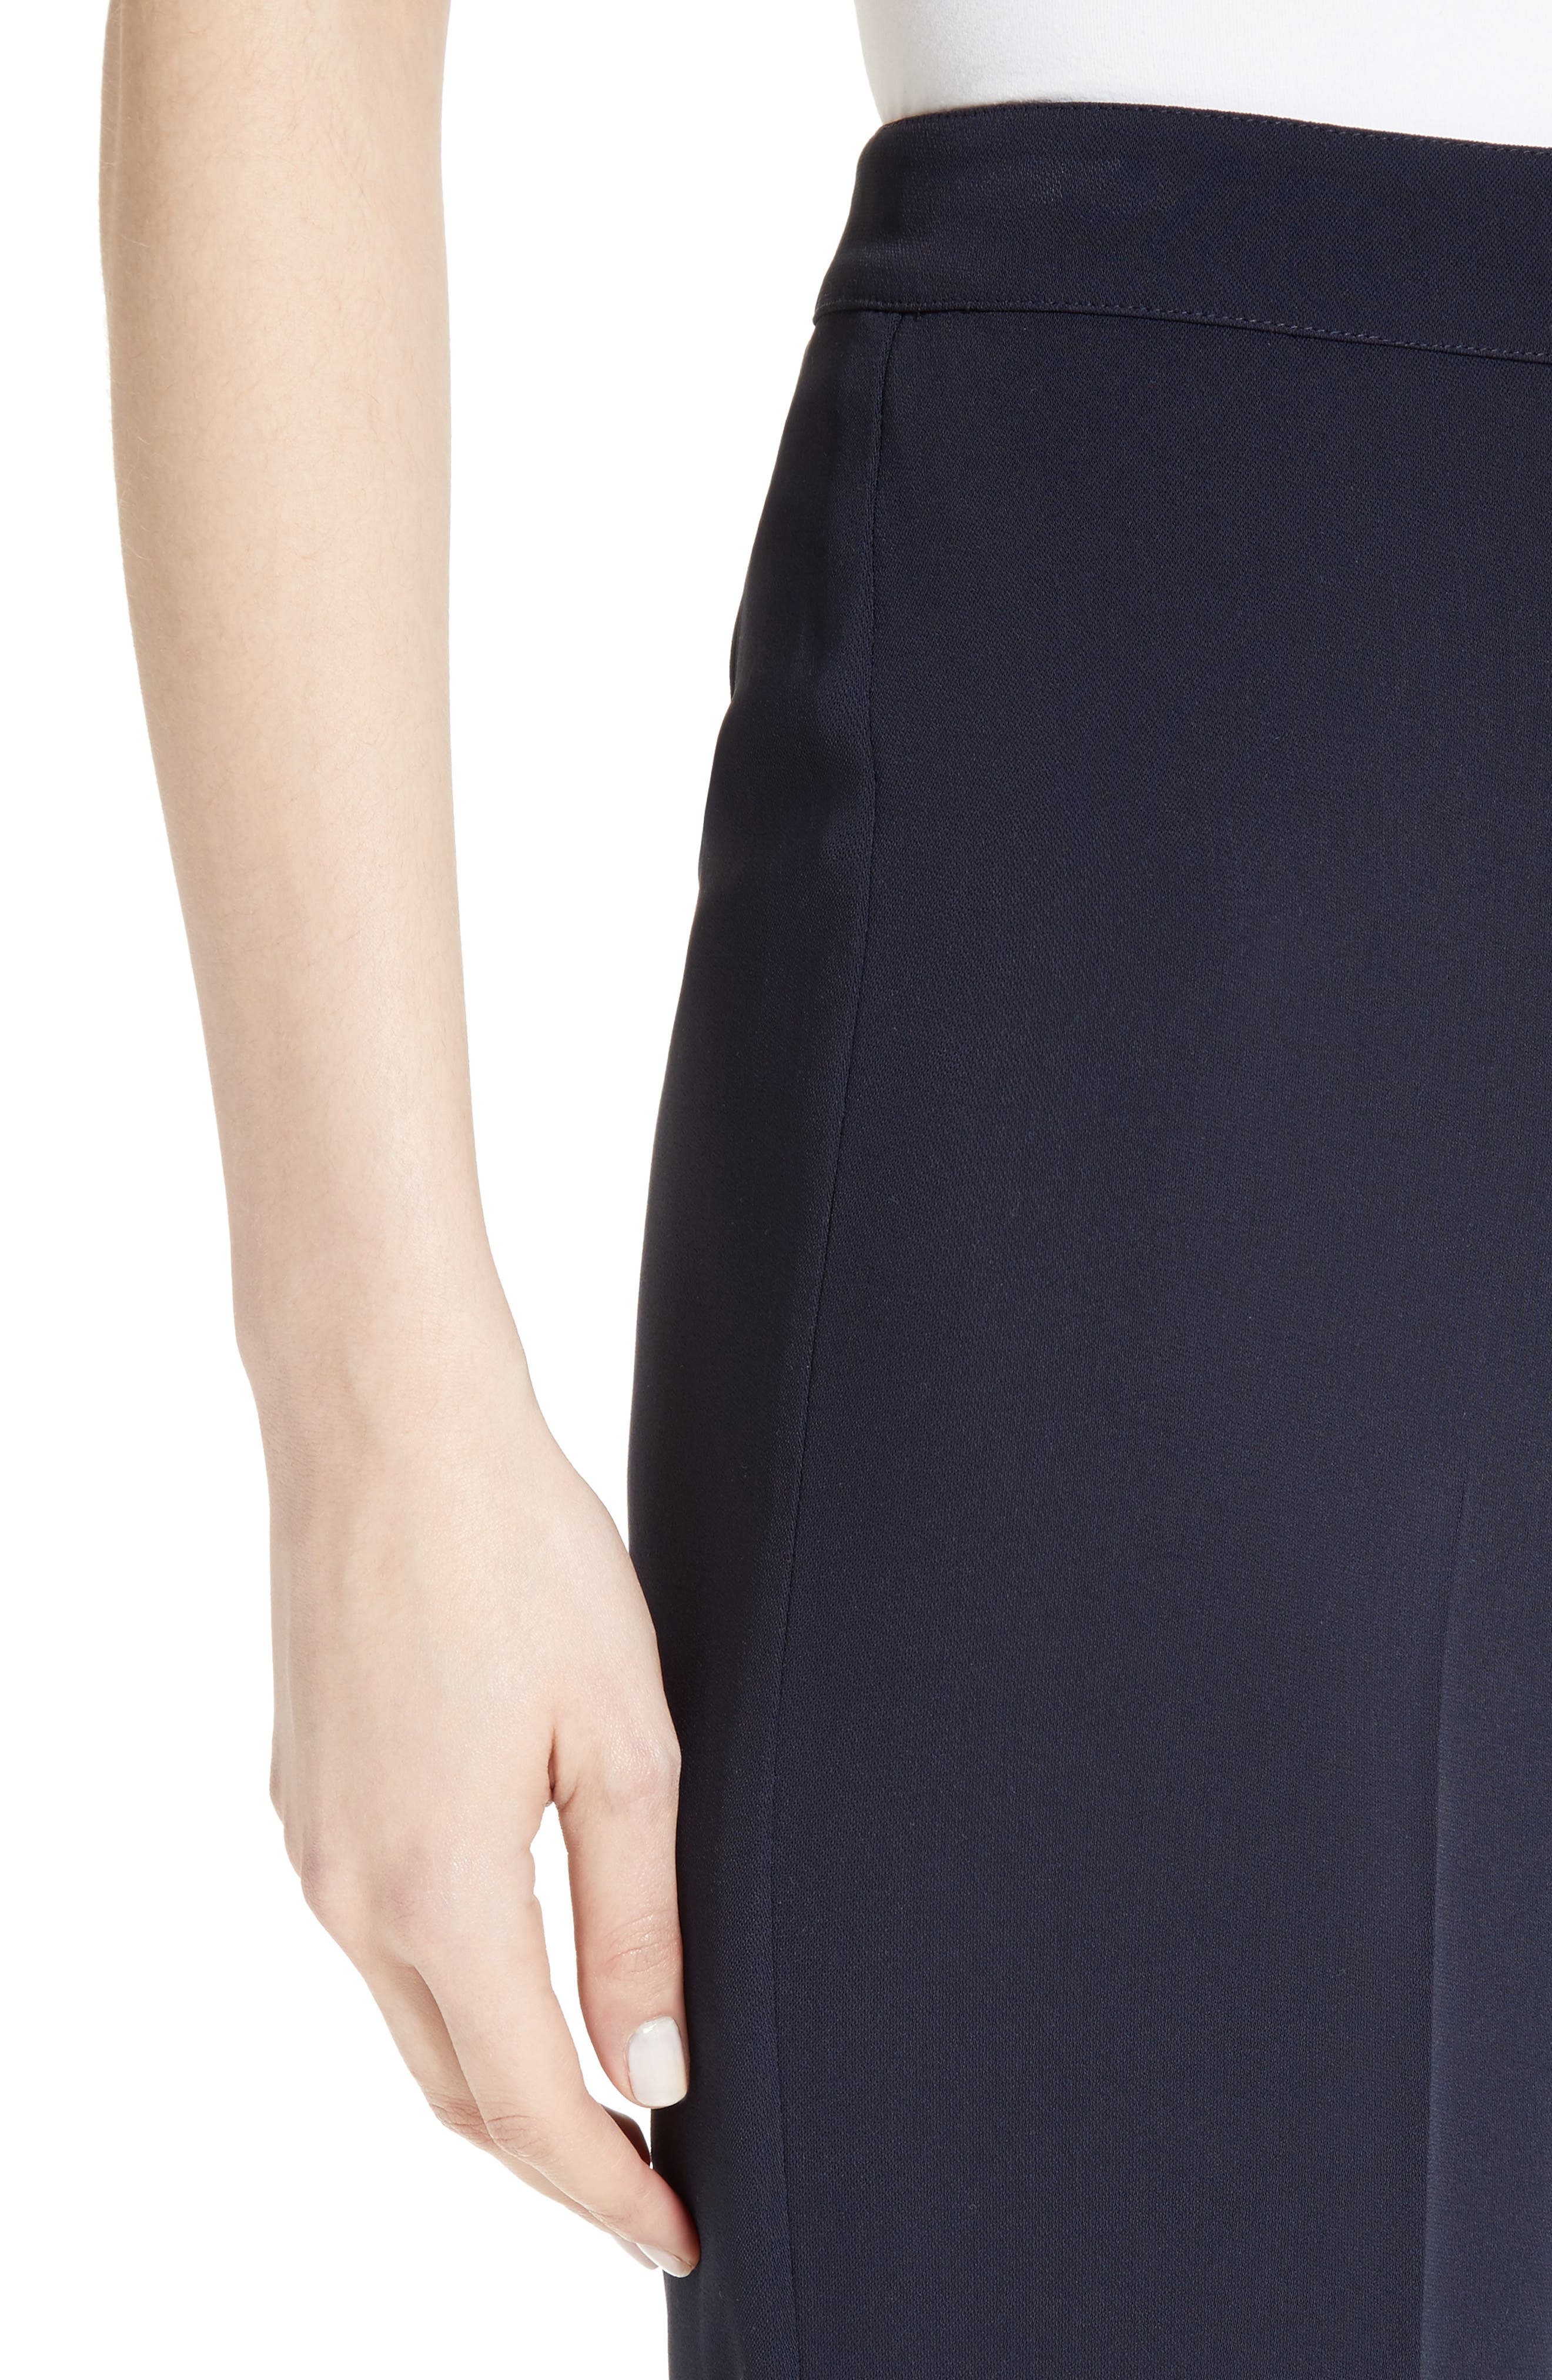 Diana Classic Cady Stretch Pants,                             Alternate thumbnail 4, color,                             NAVY